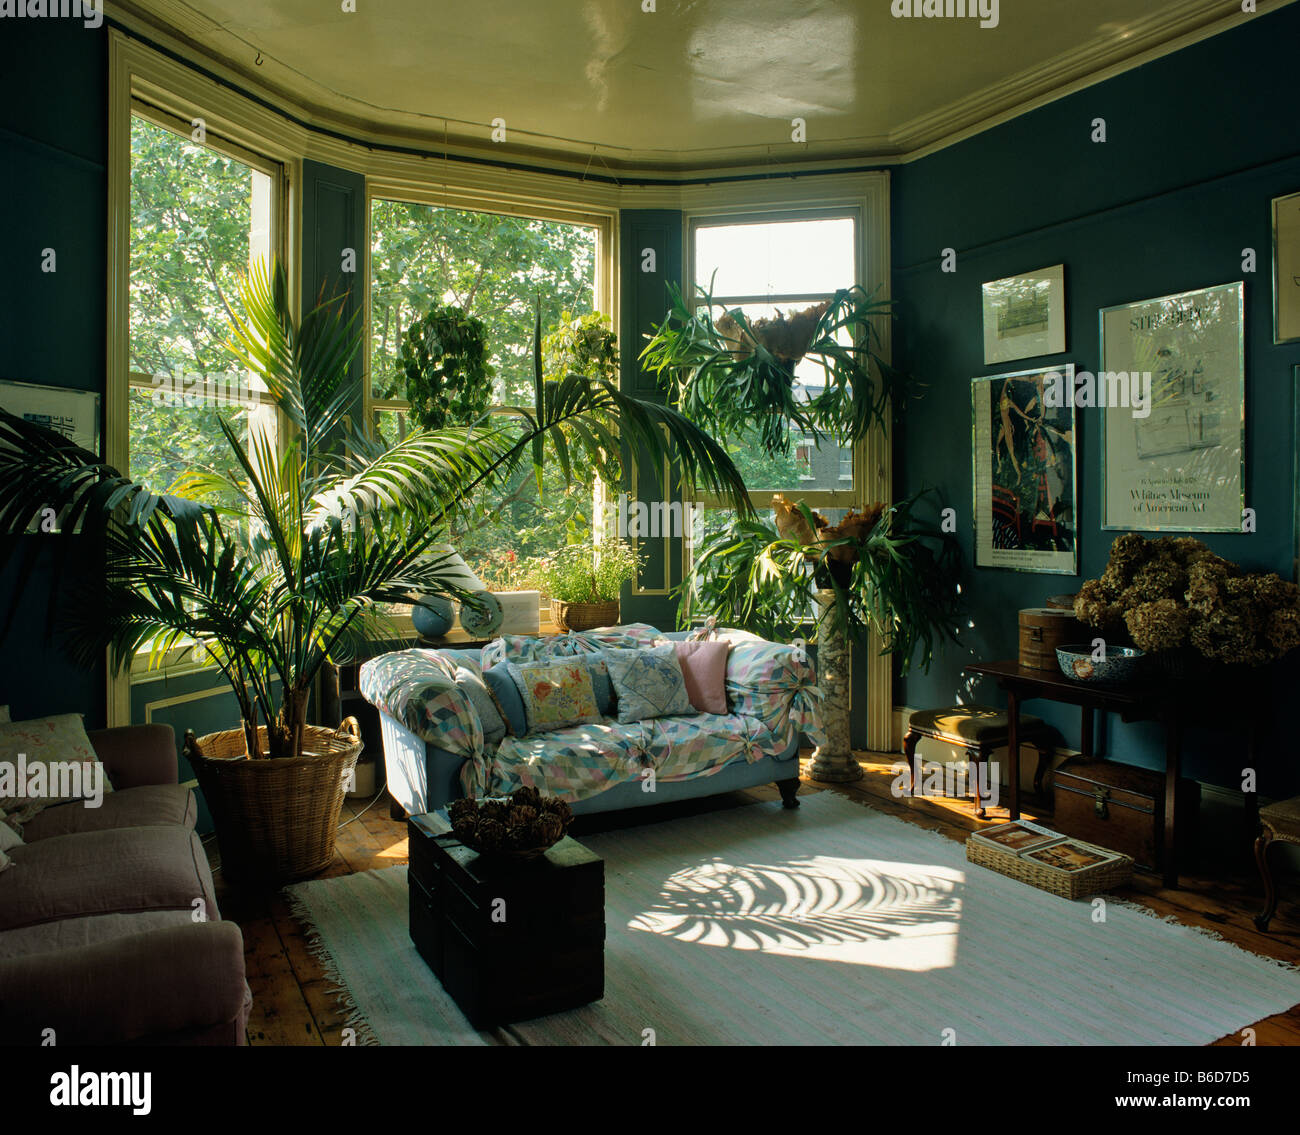 Nice Eighties Style Living Room Interior   Stock Image